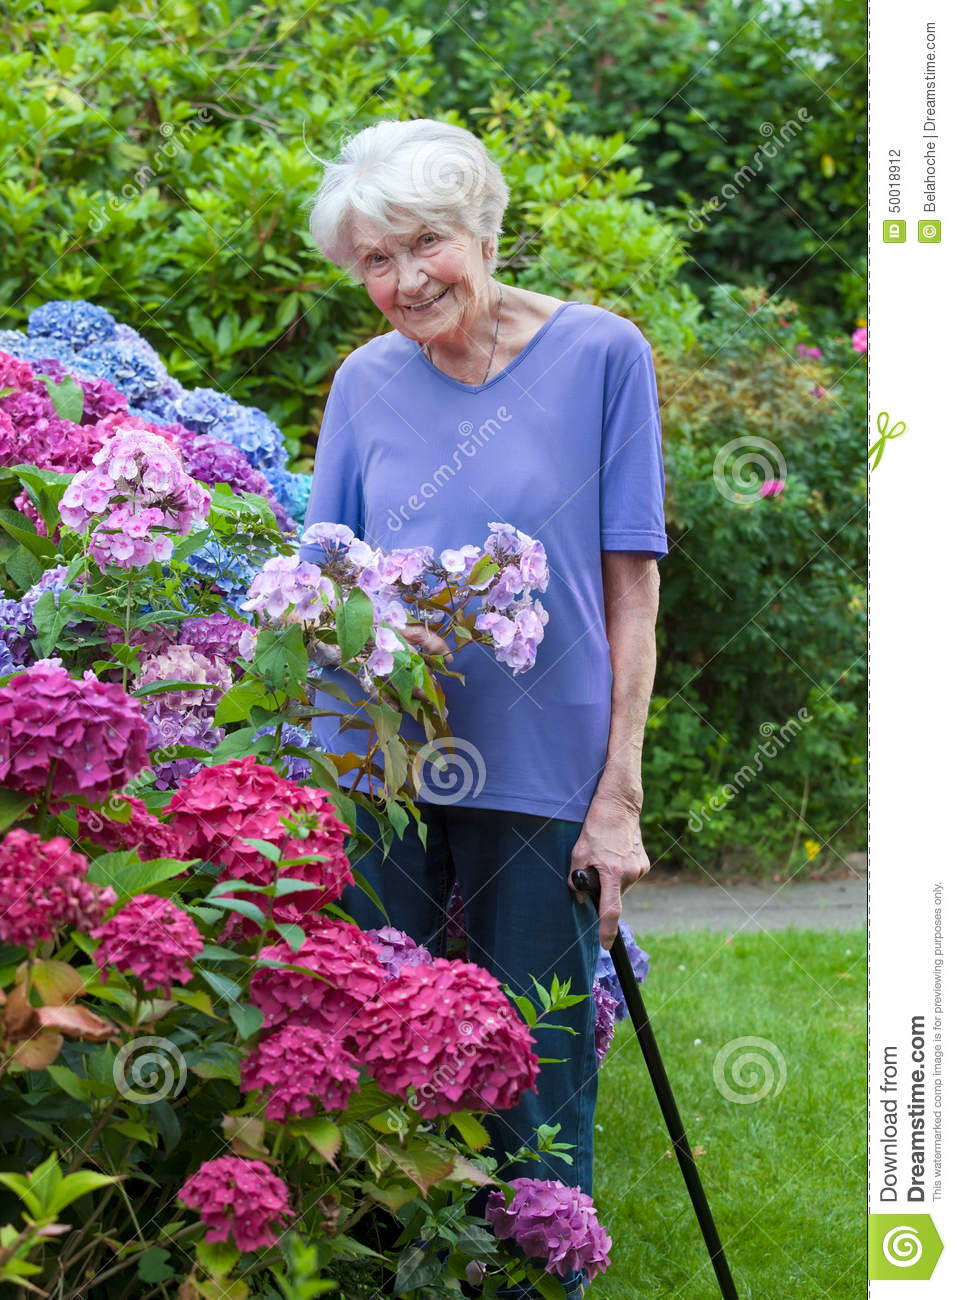 Donna anziana con Cane Posing Beside Pretty Flowers